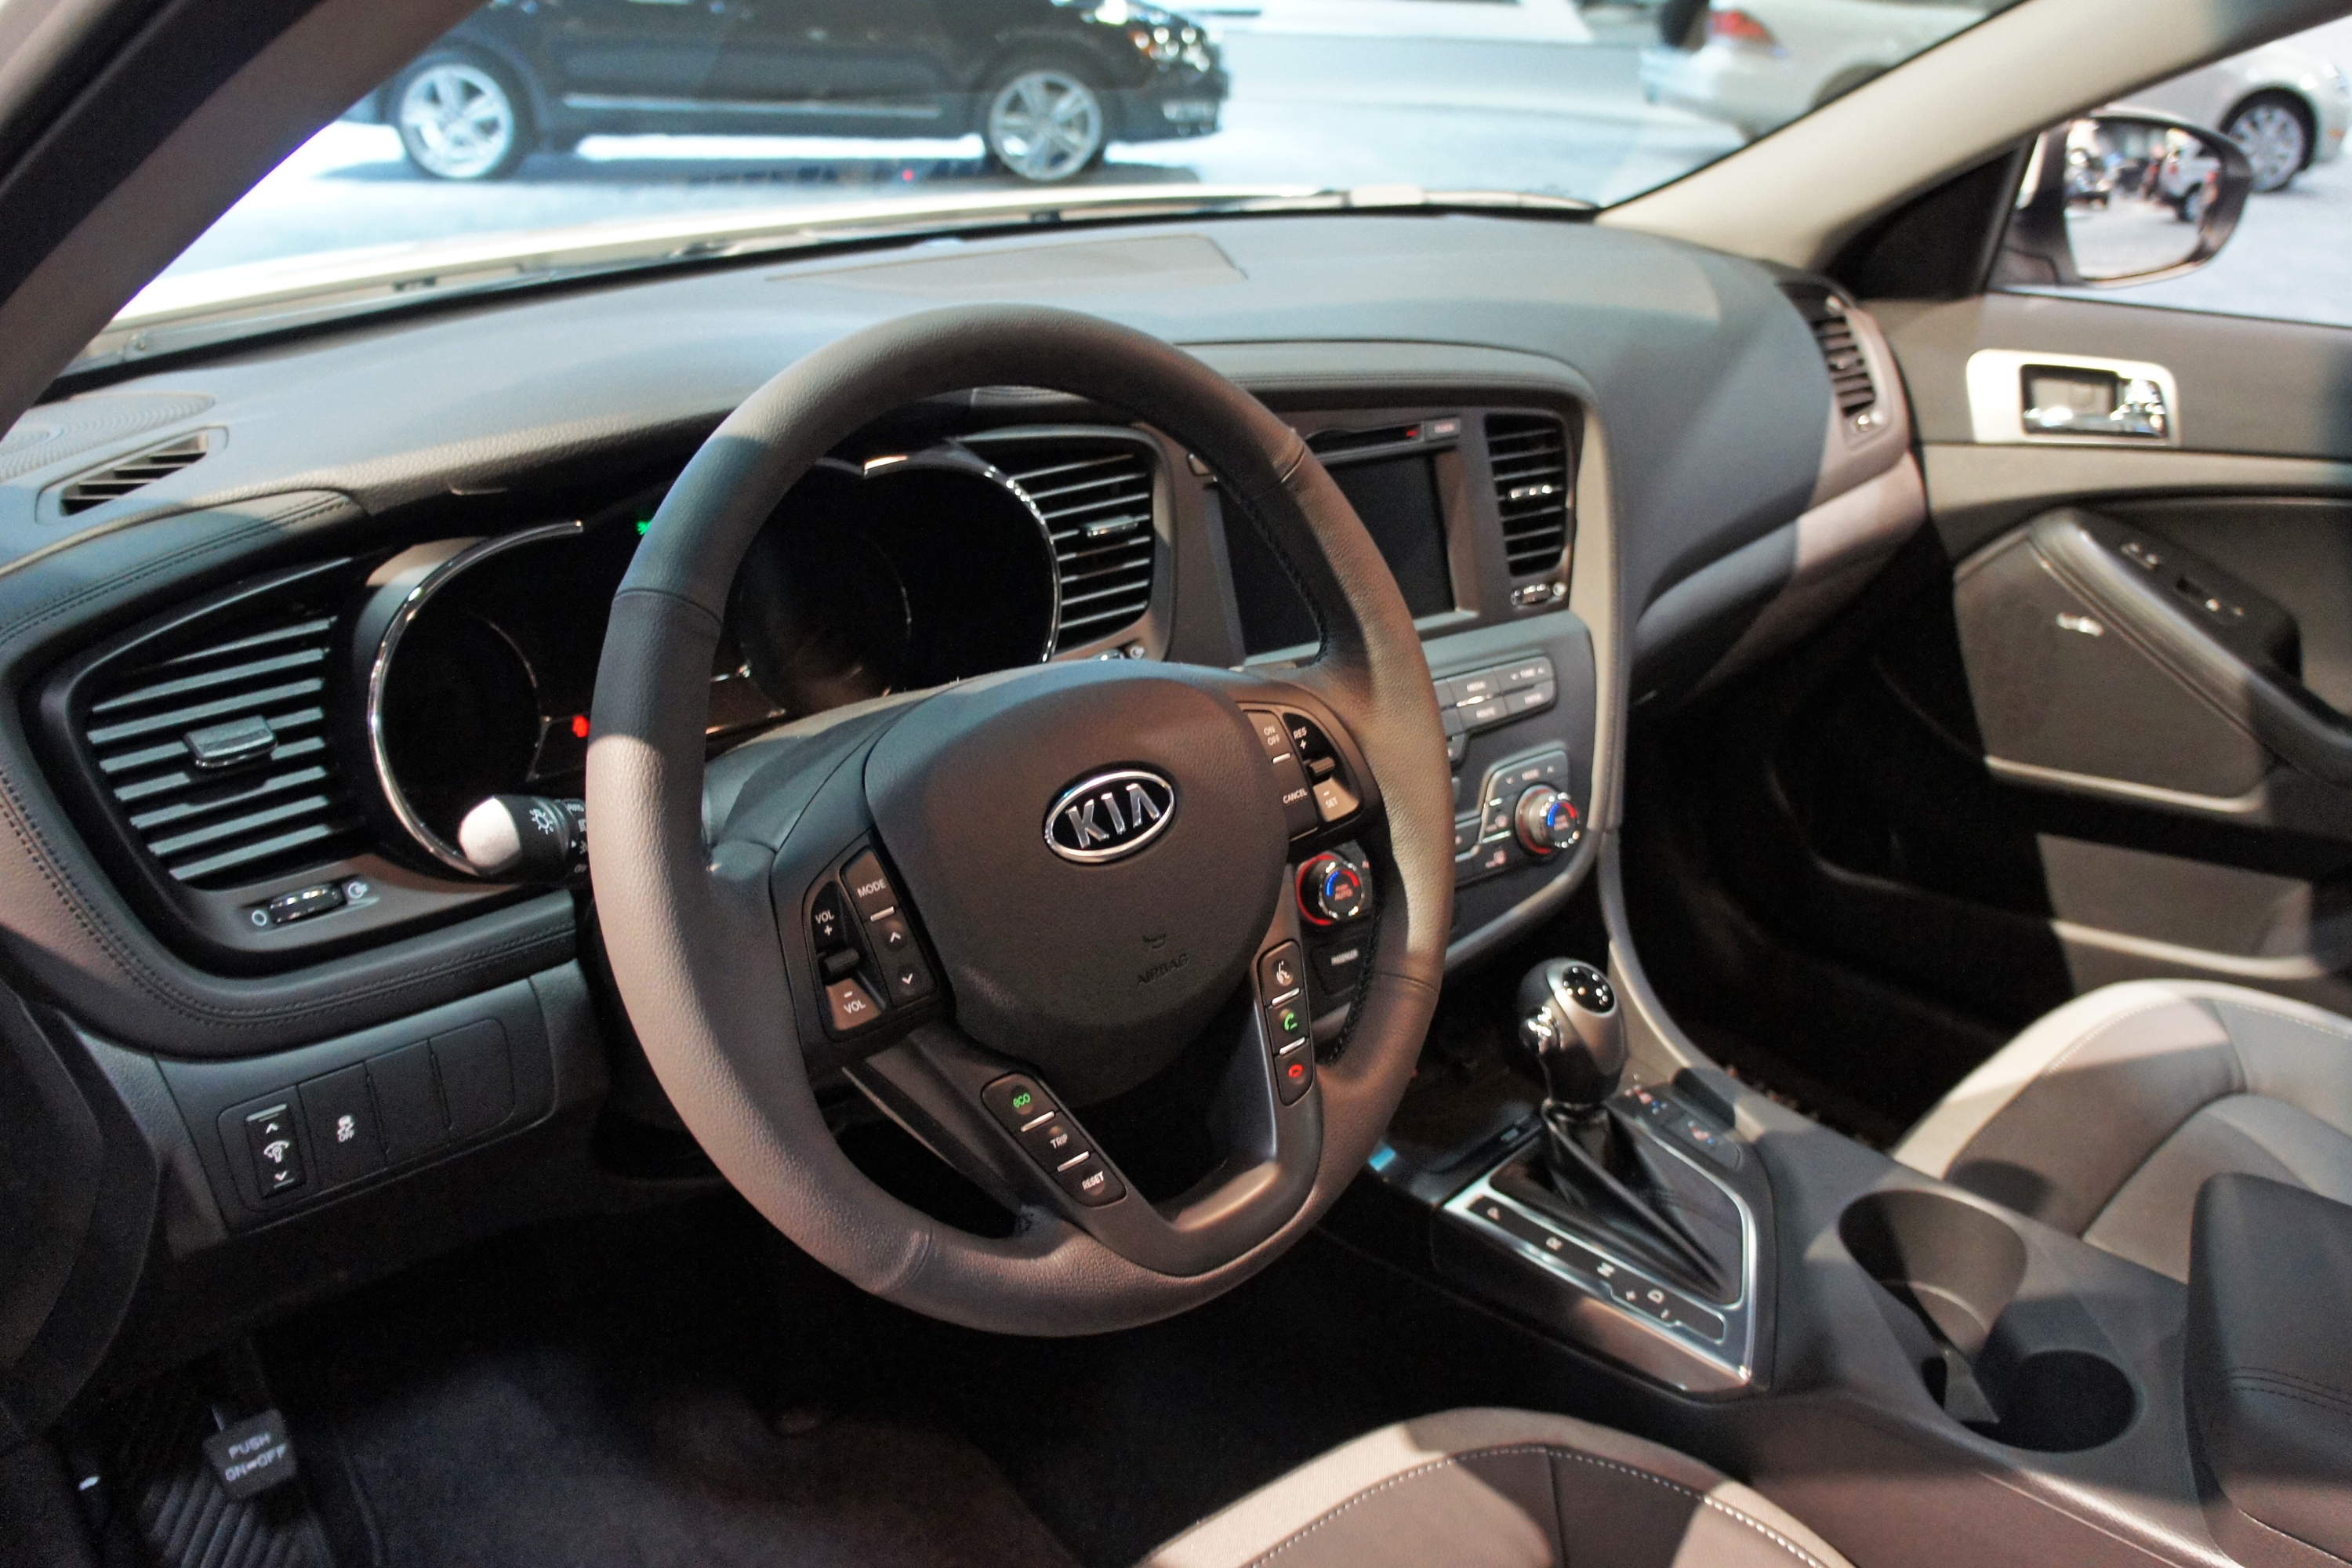 File:2012 Kia Optima Hybrid WAS 2012 0742.JPG - Wikimedia Commons